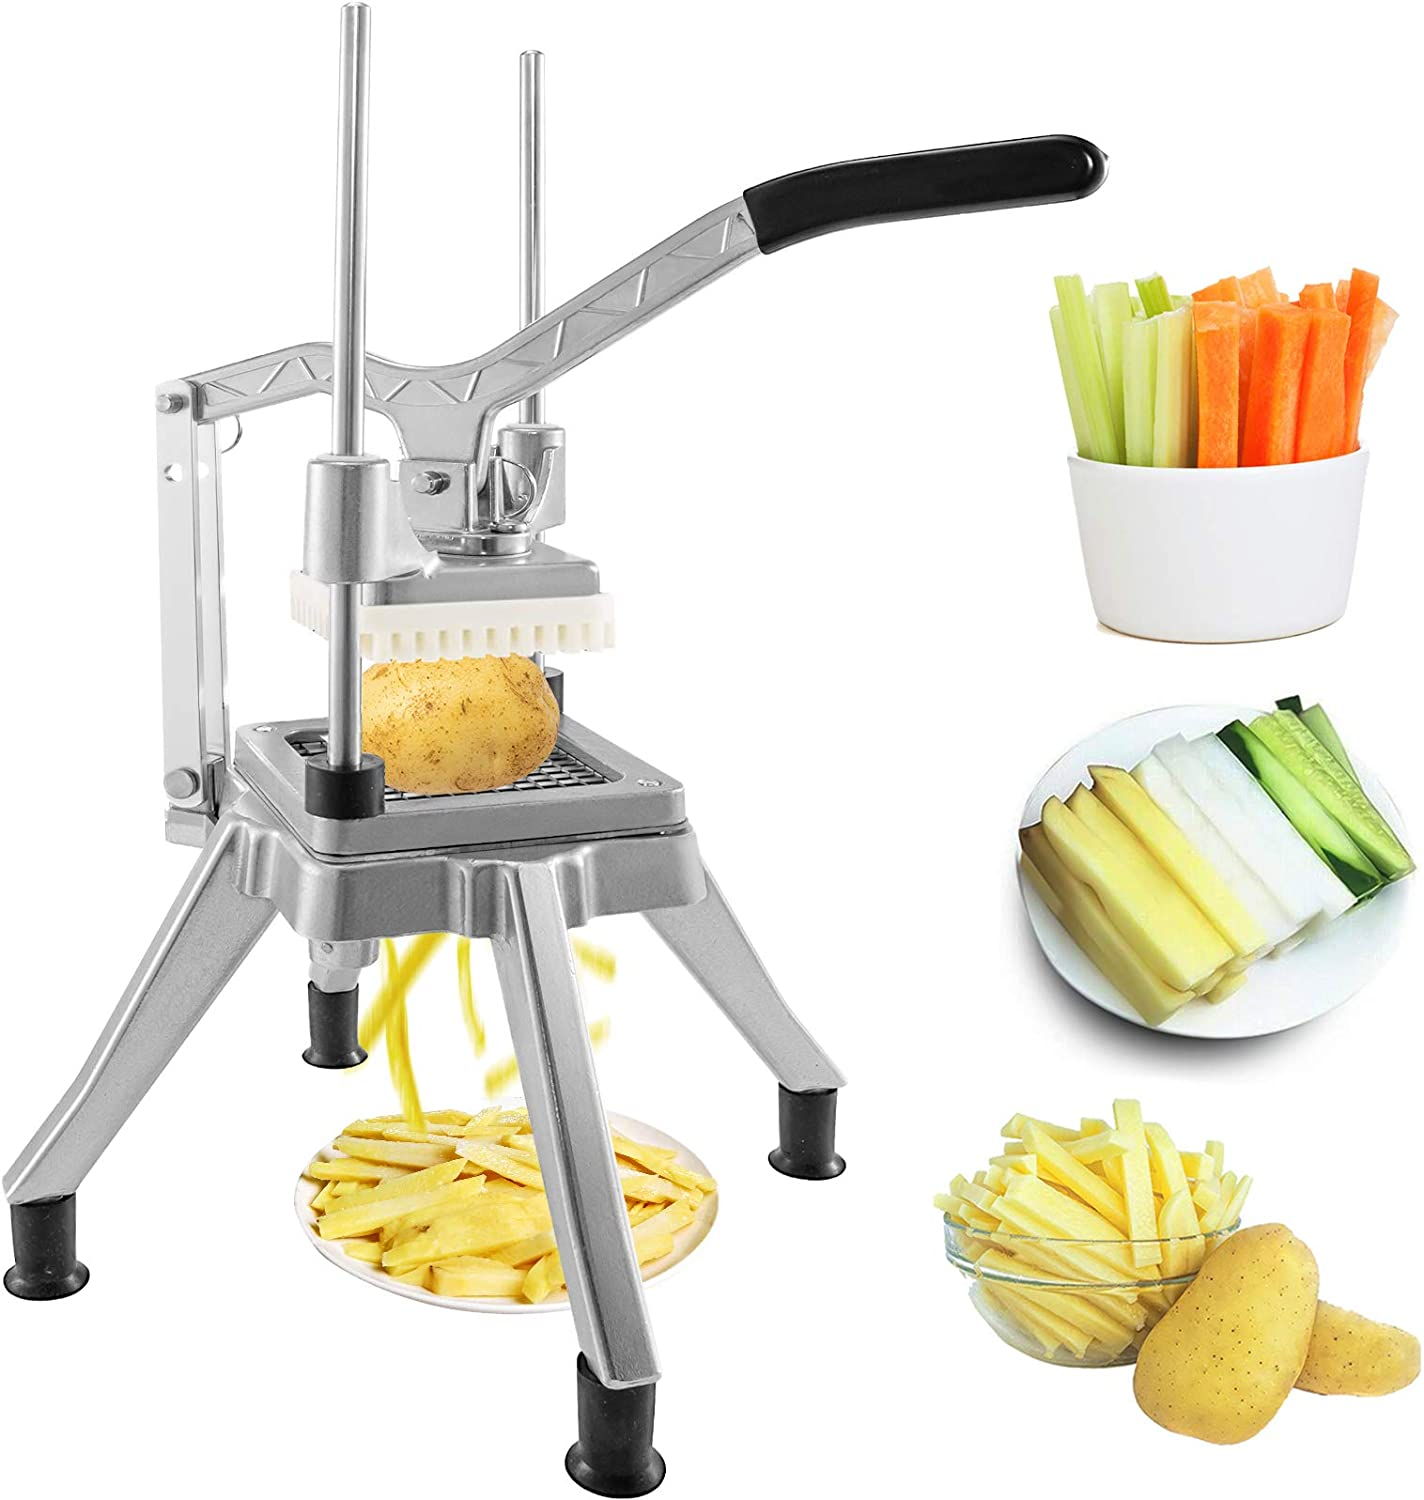 Happybuy Commercial Vegetable Fruit Chopper 3/8″ Blade Heavy Duty Professional Food Dicer Kattex French Fry Cutter Onion Slicer Stainless Steel for Tomato Peppers Potato Mushroom